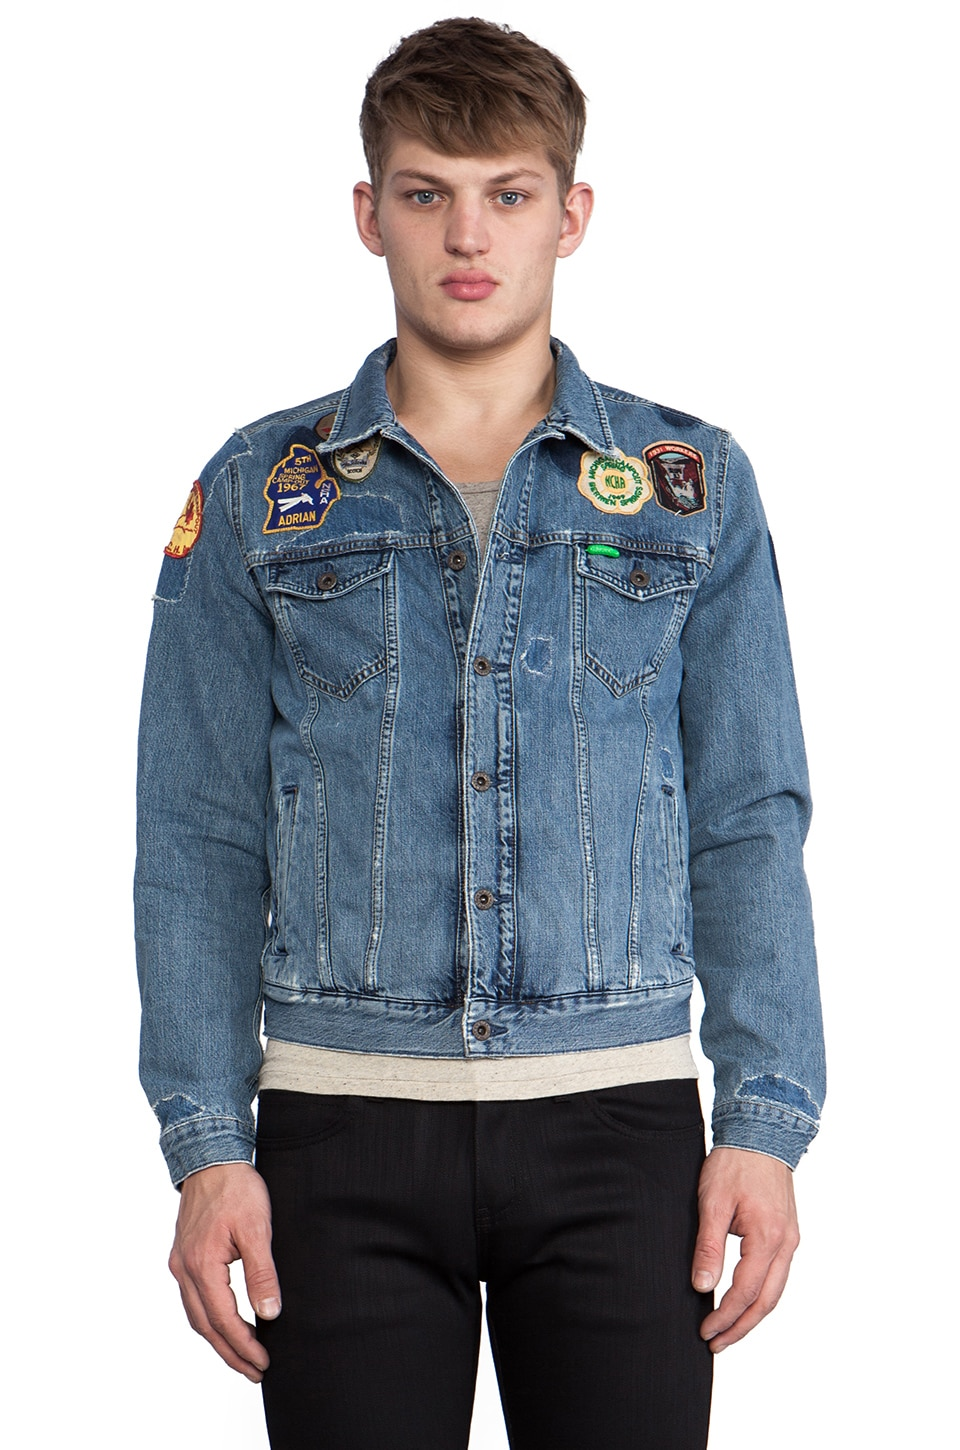 Scotch & Soda Denim Jacket w/ Patches in Vintage Trucker Dust Bowl